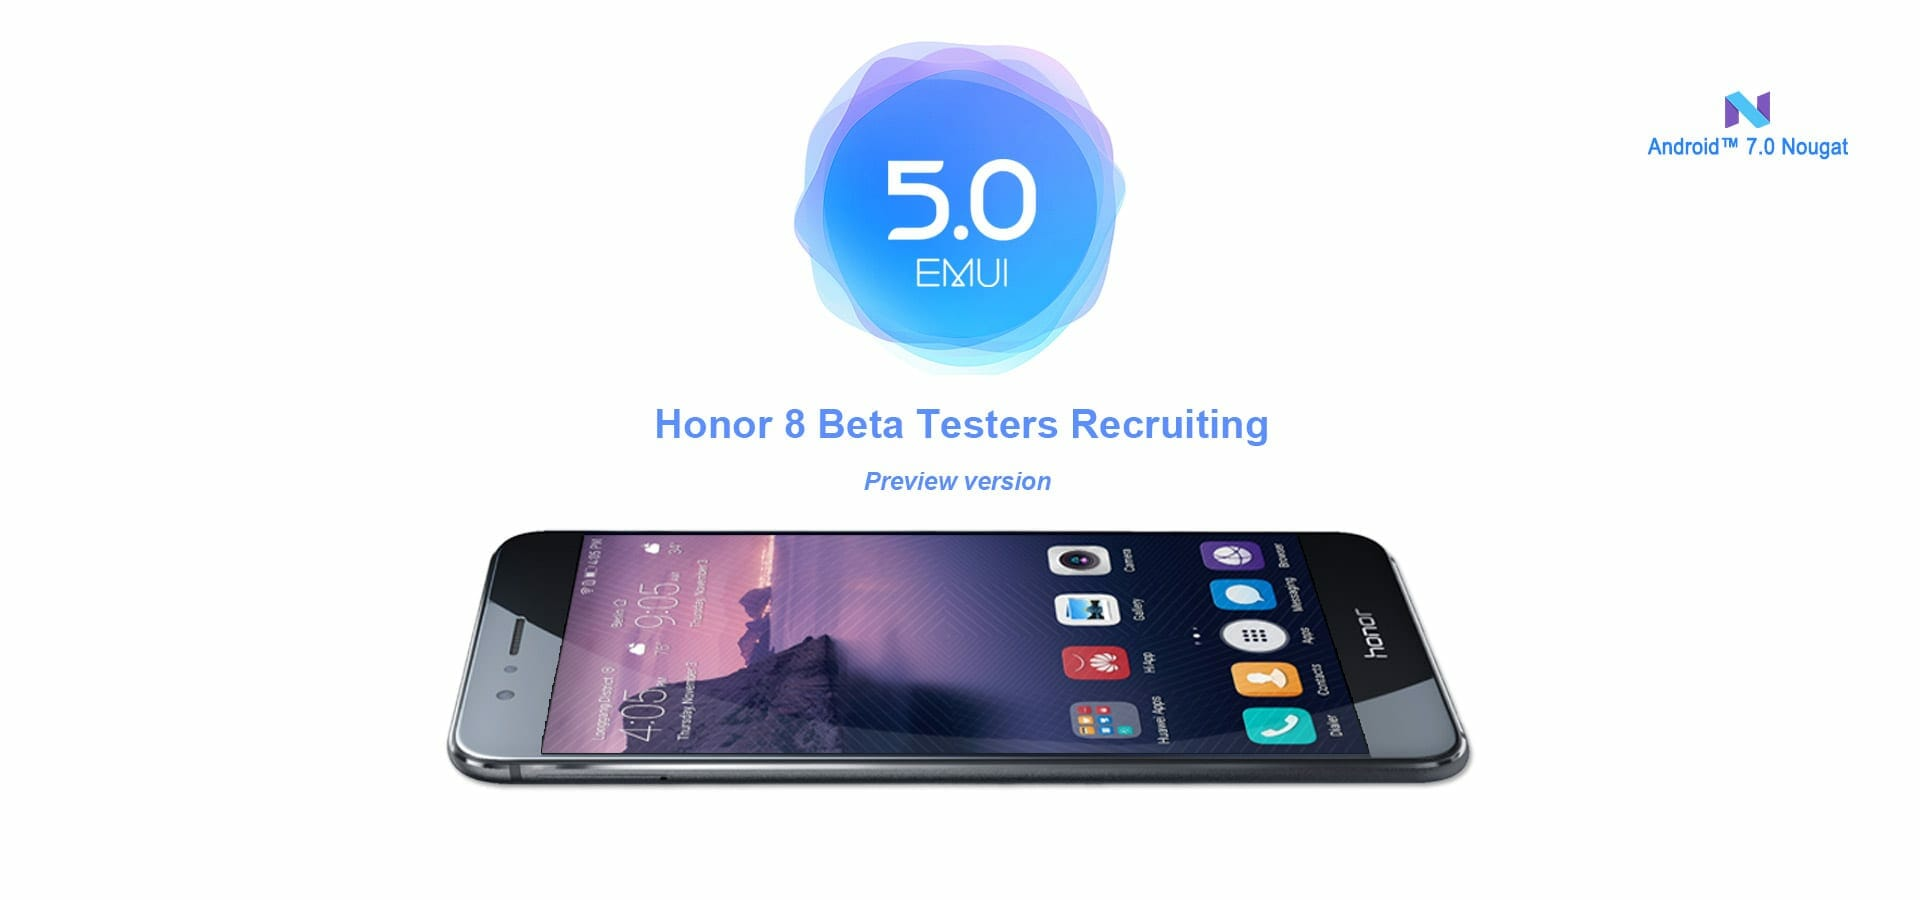 Huawei Honor 8 Update Android 7